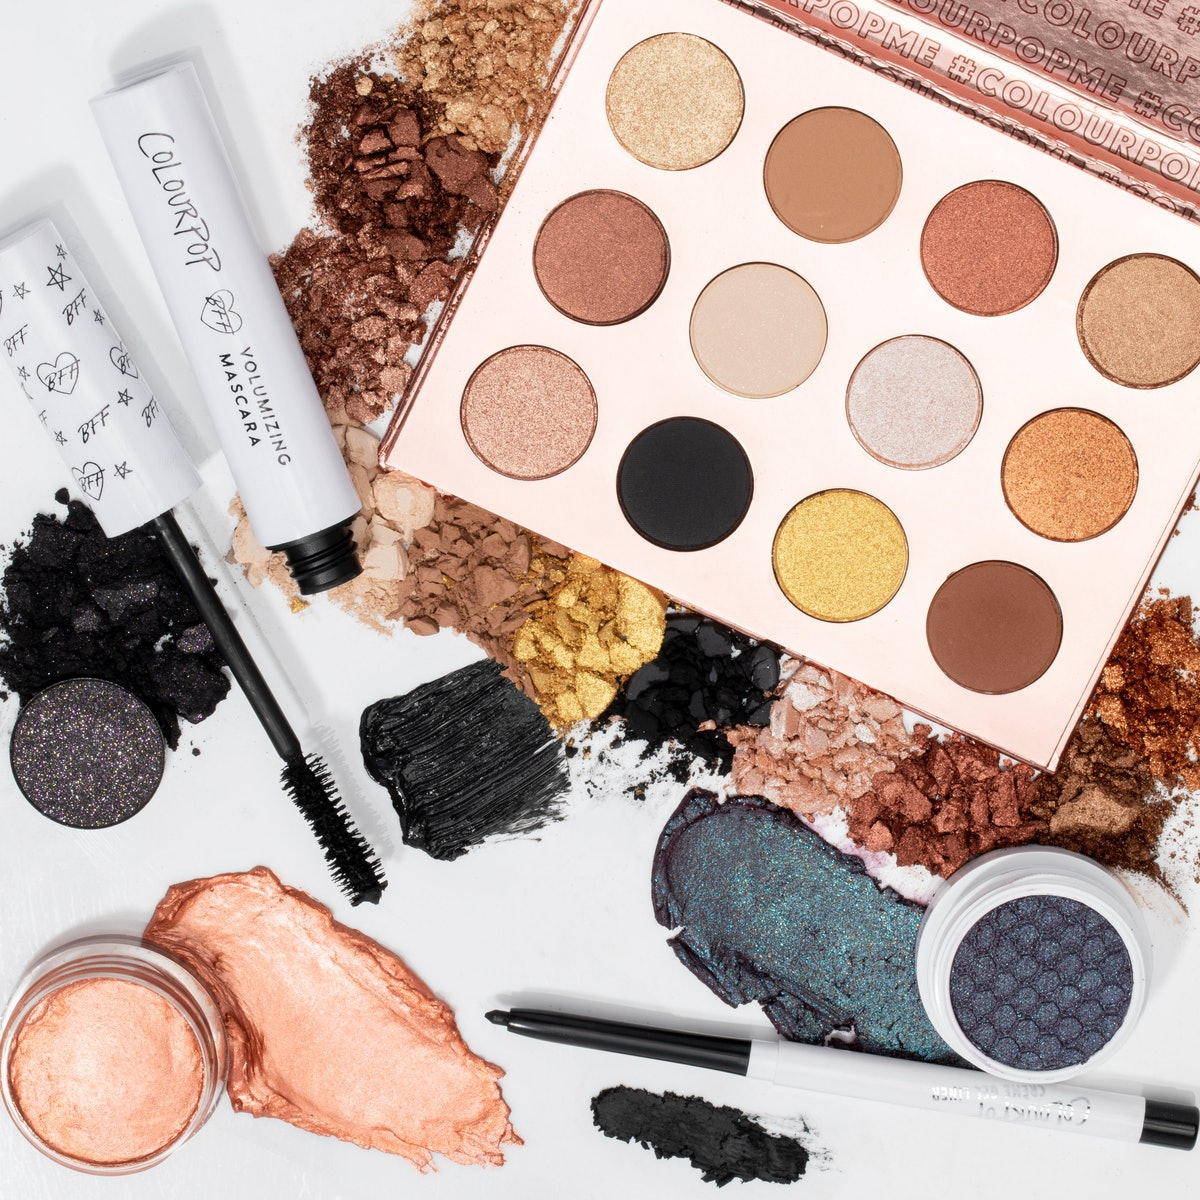 The Best ColourPop Eyeshadow Palettes, According To These Glowing Reviews